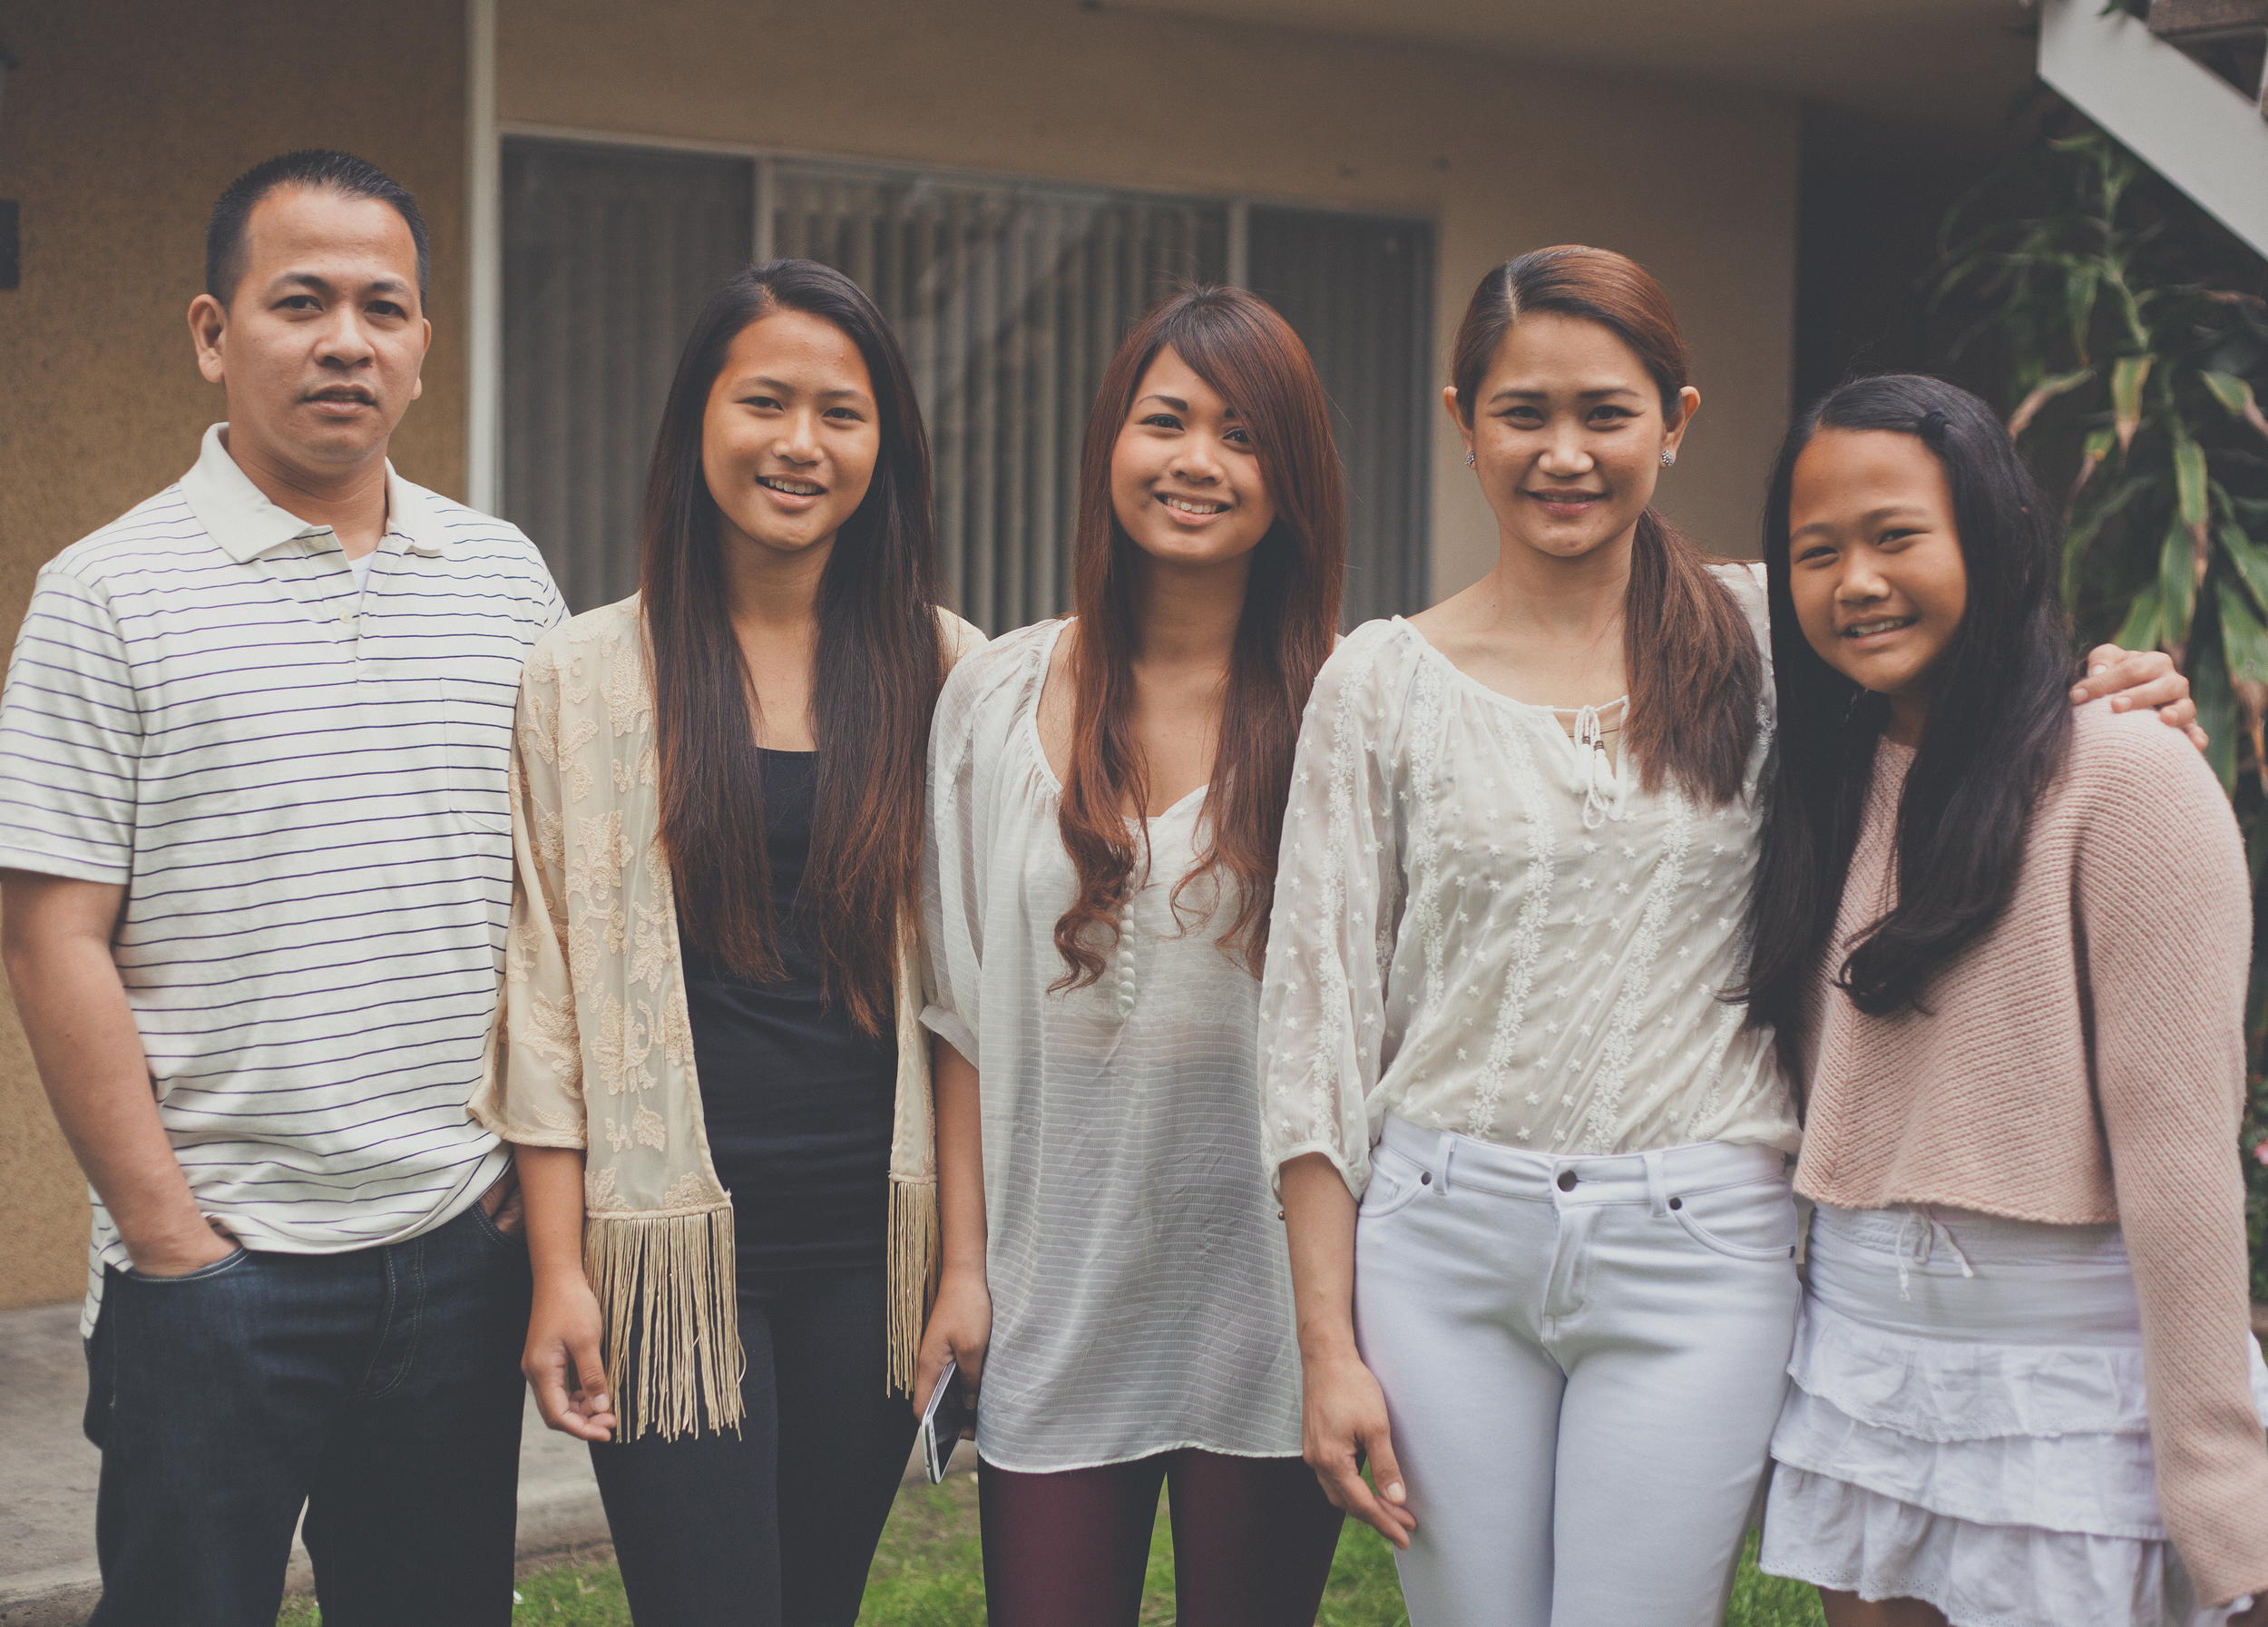 Meet Rita Garcia and family - My name is Rita. My family and I are from General Santos in the Philippines. We came to America for the opportunities—not only for us, but more for our daughters, Camille (17), Katrina (14), and Chloe (10). Like all parents, we want to give them the opportunities we didn't have, and we know that they will be able to make their dreams come true here in America.My daughters are really loving America.Camille is a high school senior and works part time in retail fashion. She would like to be a fashion designer one day. Apart from that, like a true Filipina, she enjoys singing and she regularly posts her renditions of pop songs on youtube, where she enjoys a huge following.Katrina, is a high school freshman and is a multiple varsity athlete, particularly volleyball. She is Top 5 at her school and would like to pursue a science degree in college. Katrina plays the guitar.Chloe is in fifth grade, and is a budding filmmaker who enjoys editing videos. She also loves reading Japanese manga comics and watching anime.We moved to the U.S. only three years ago and we now live in Central Los Angeles where there are many other Filipino families. We often still miss home and the rest of our friends and family back in the Philippines. But we are happy and satisfied with the life we have made here and we are excited to see what the future will bring.